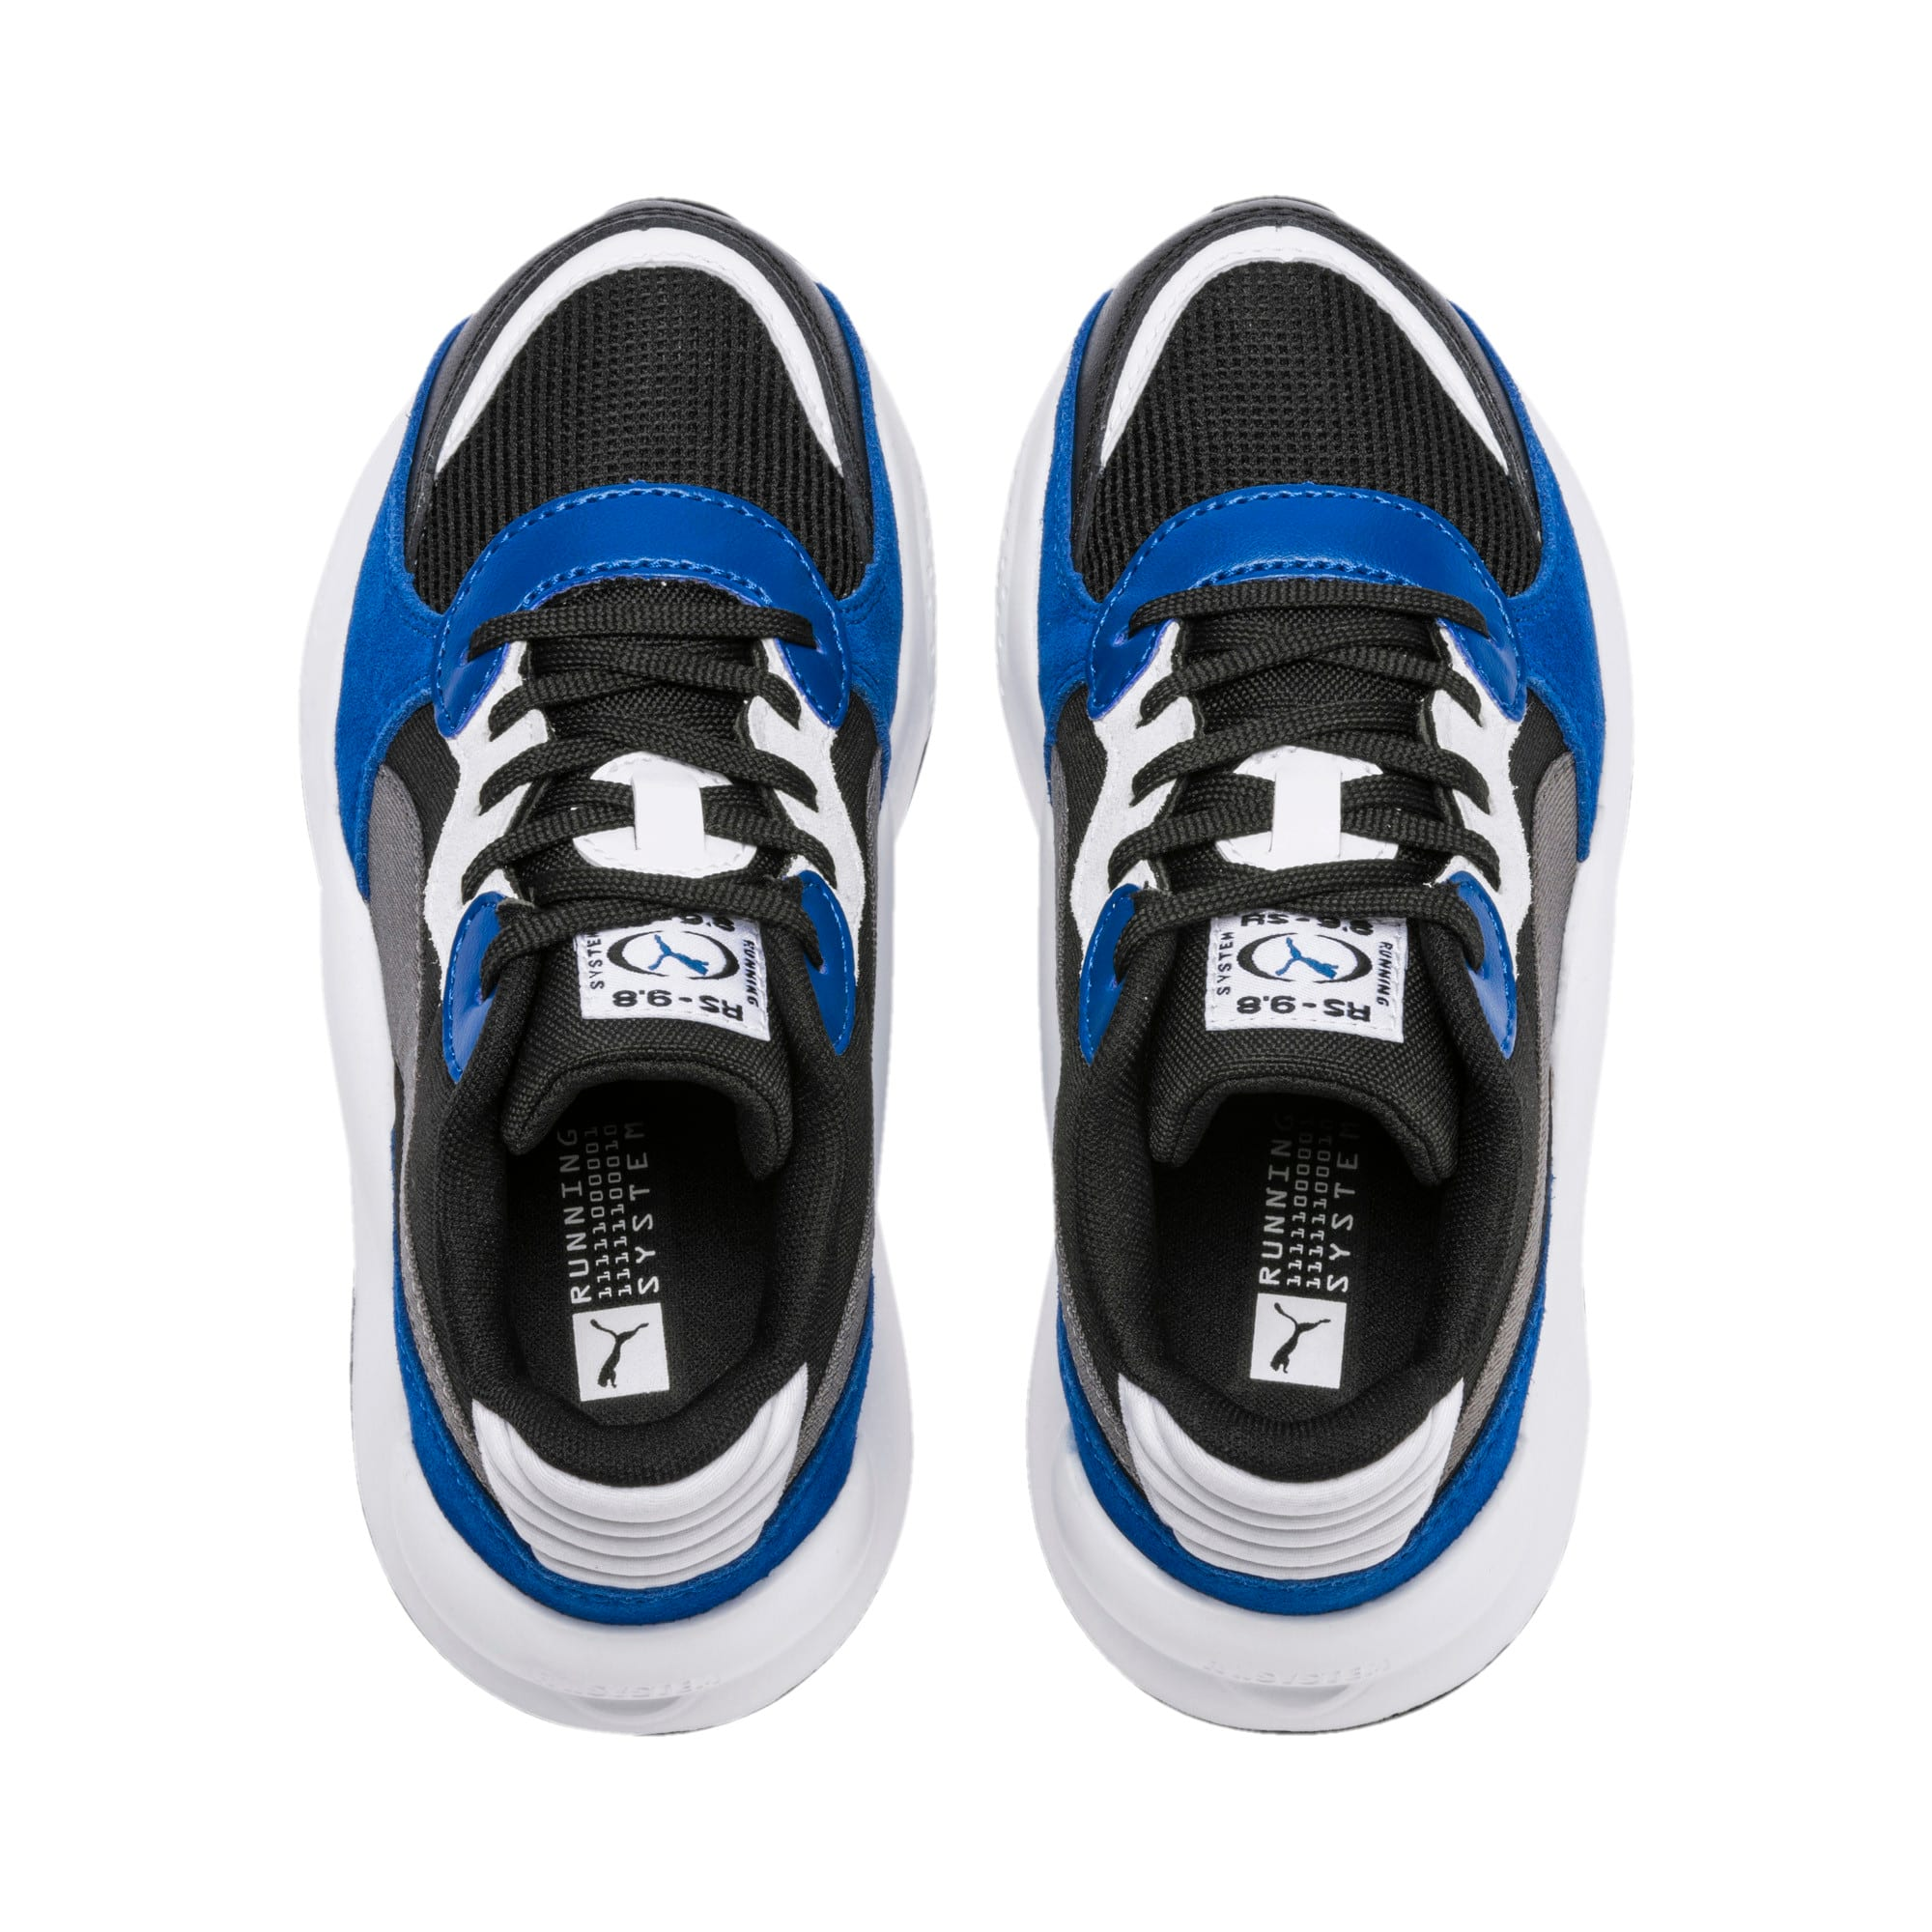 Thumbnail 6 of RS 9.8 Space Kids' Trainers, Puma Black-Galaxy Blue, medium